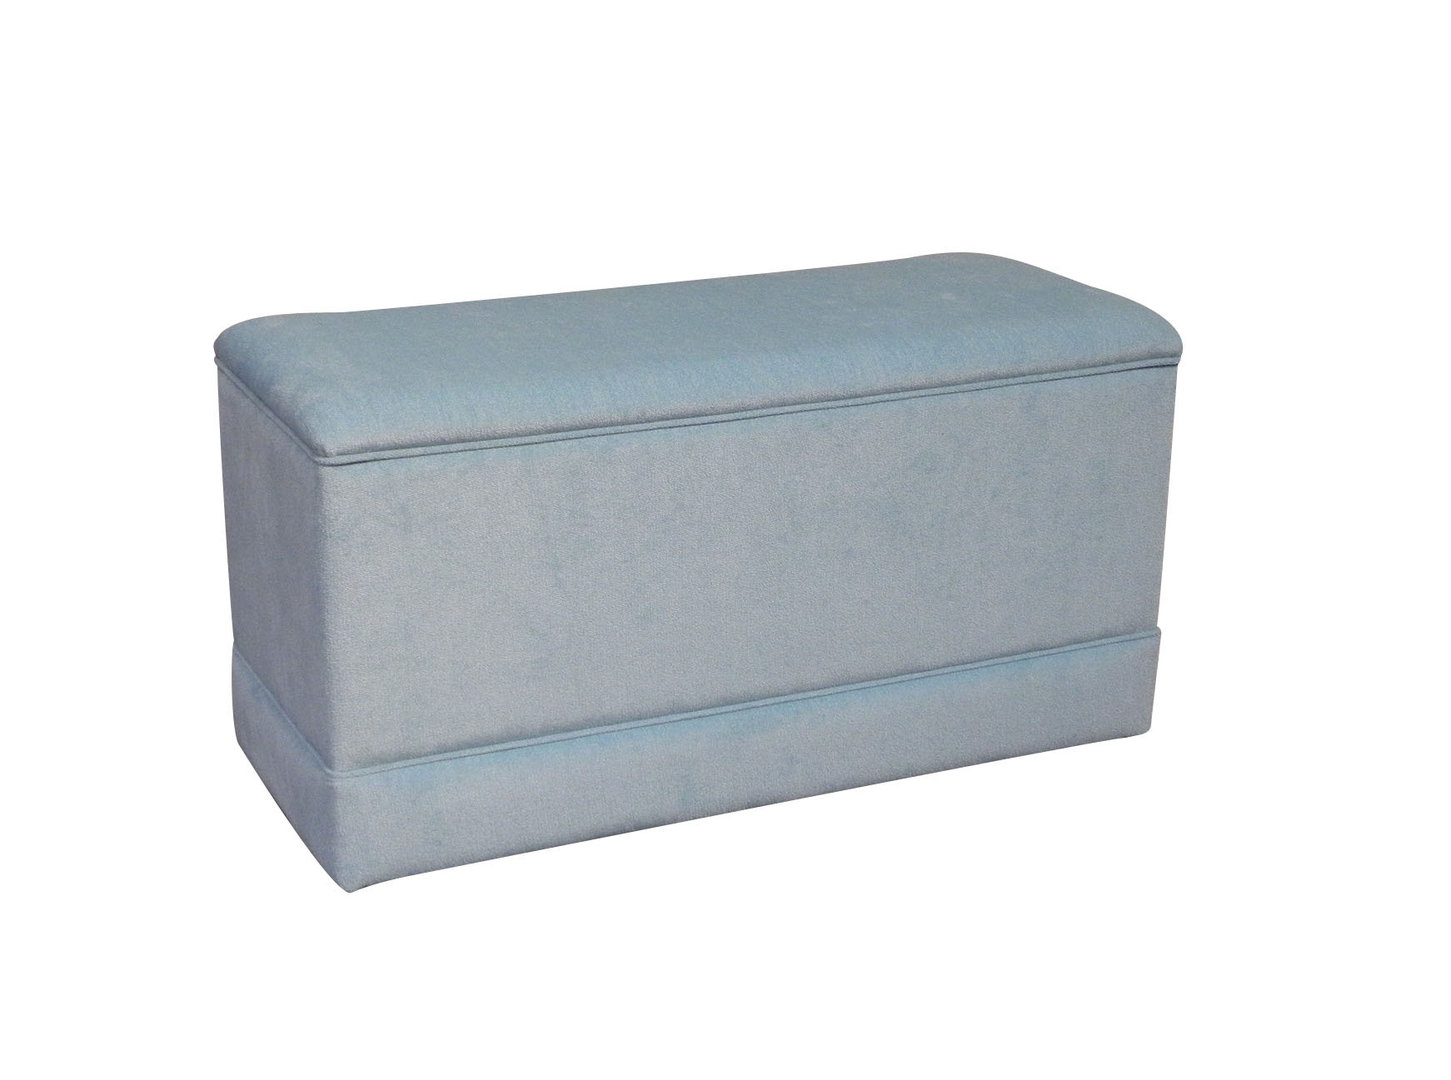 Swell Large Ottoman Storage Box Linen Storage Chest In Duck Egg Machost Co Dining Chair Design Ideas Machostcouk